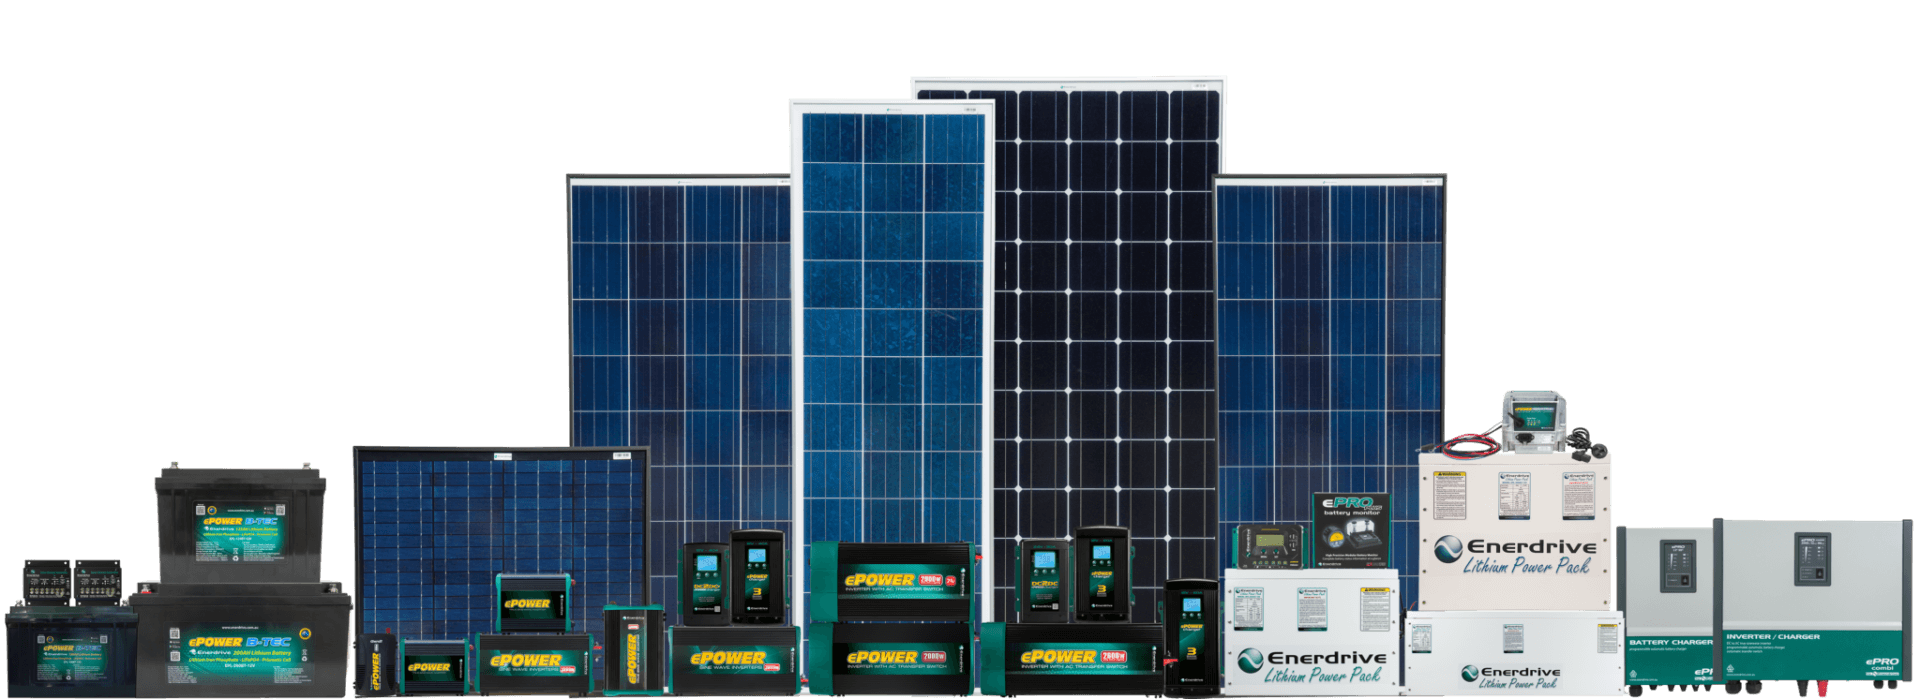 photo of Enerdrive Product Range